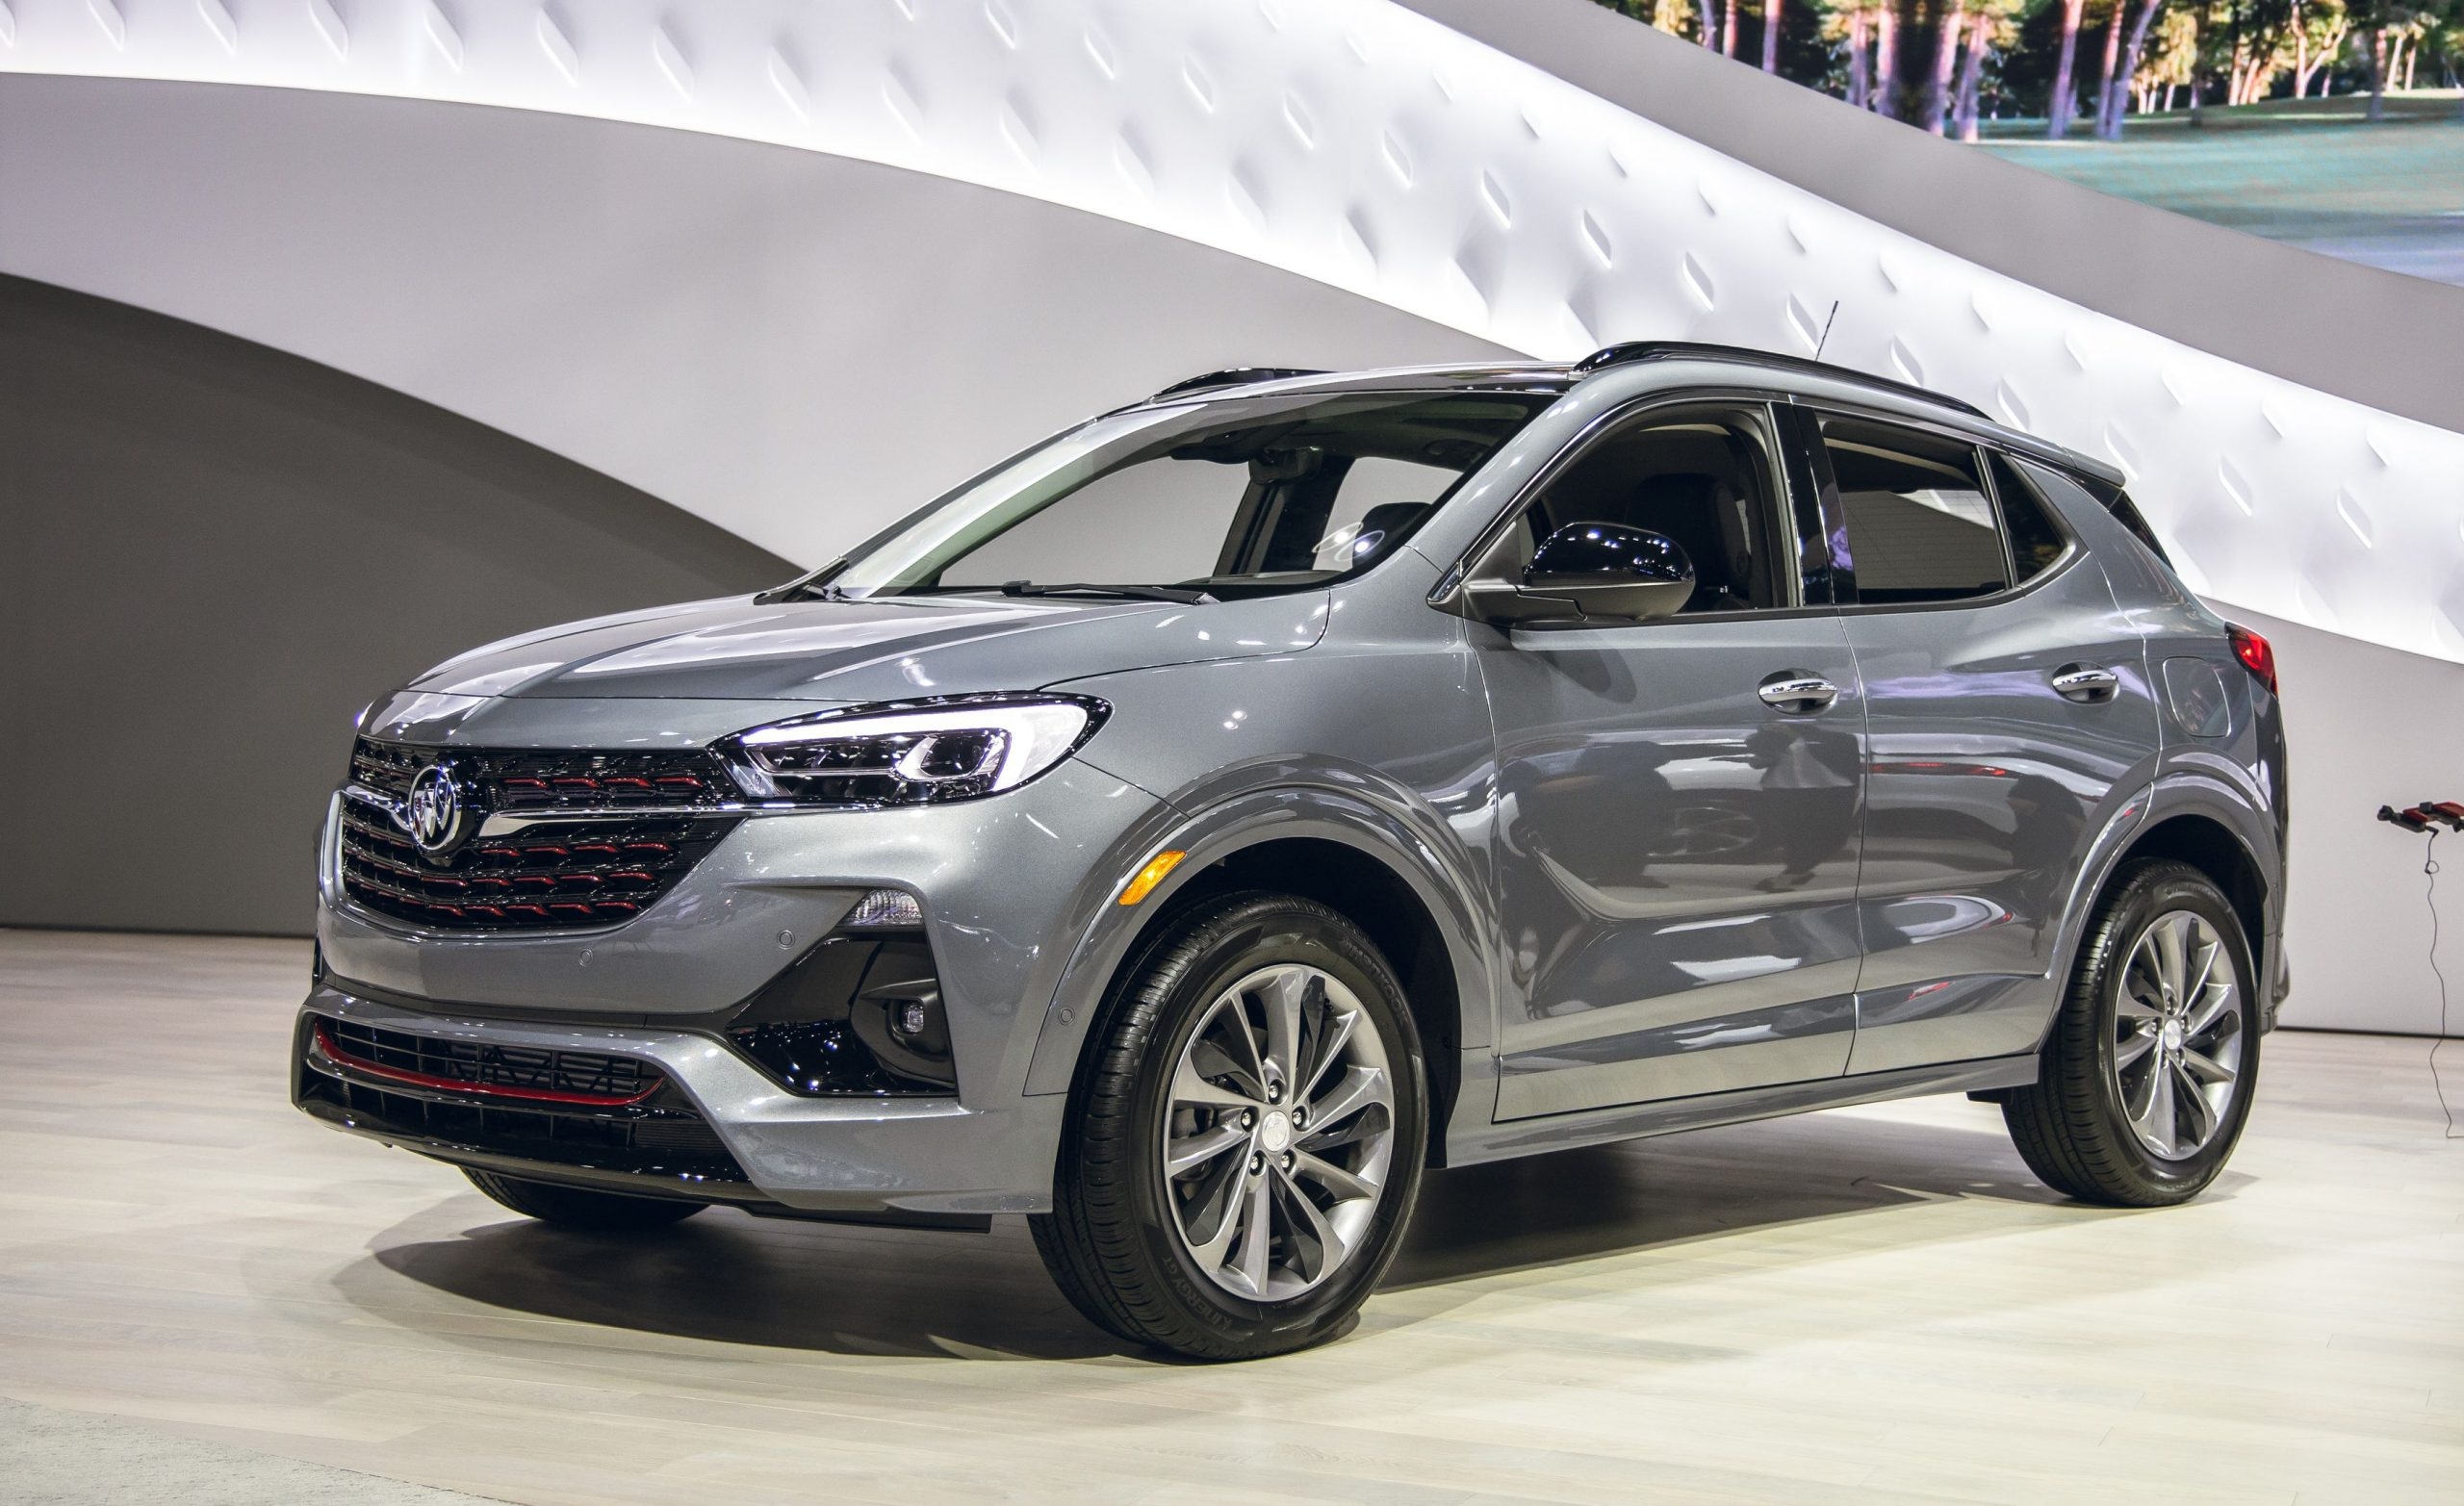 Buick Reveals More Details Of 2020 Encore Gx New 2022 Buick Encore Gx Review, Dimensions, Price